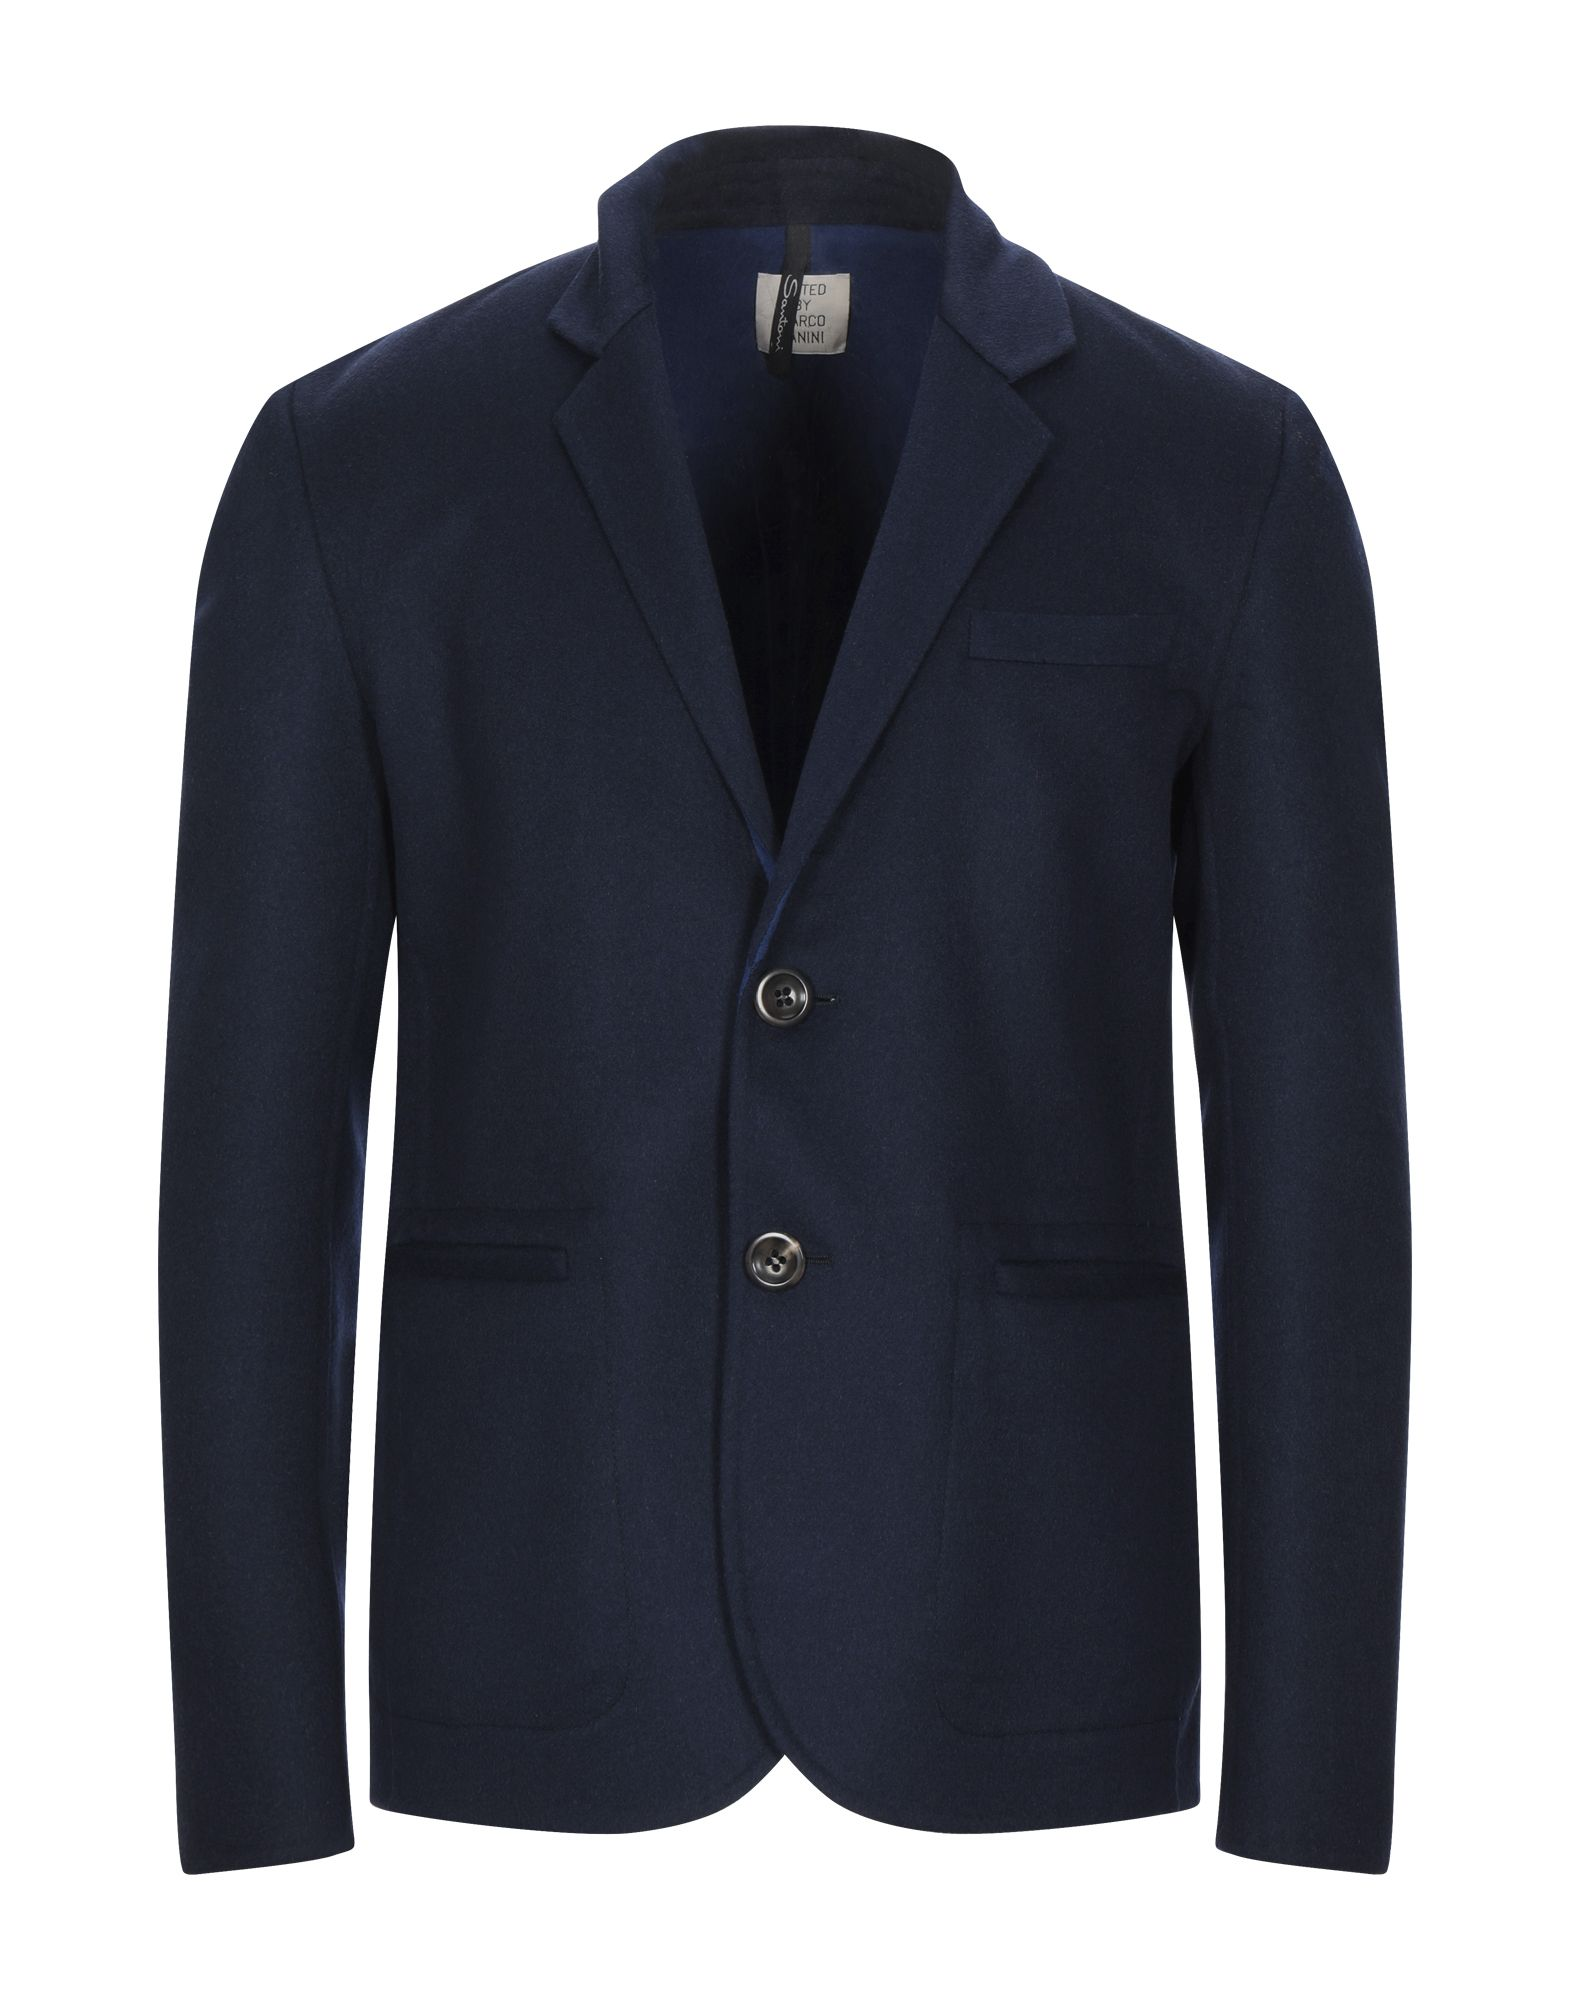 SANTONI Suit jackets. boiled wool, no appliqués, multipockets, basic solid color, button closing, lapel collar, single-breasted, long sleeves, unlined. 90% Virgin Wool, 10% Cashmere